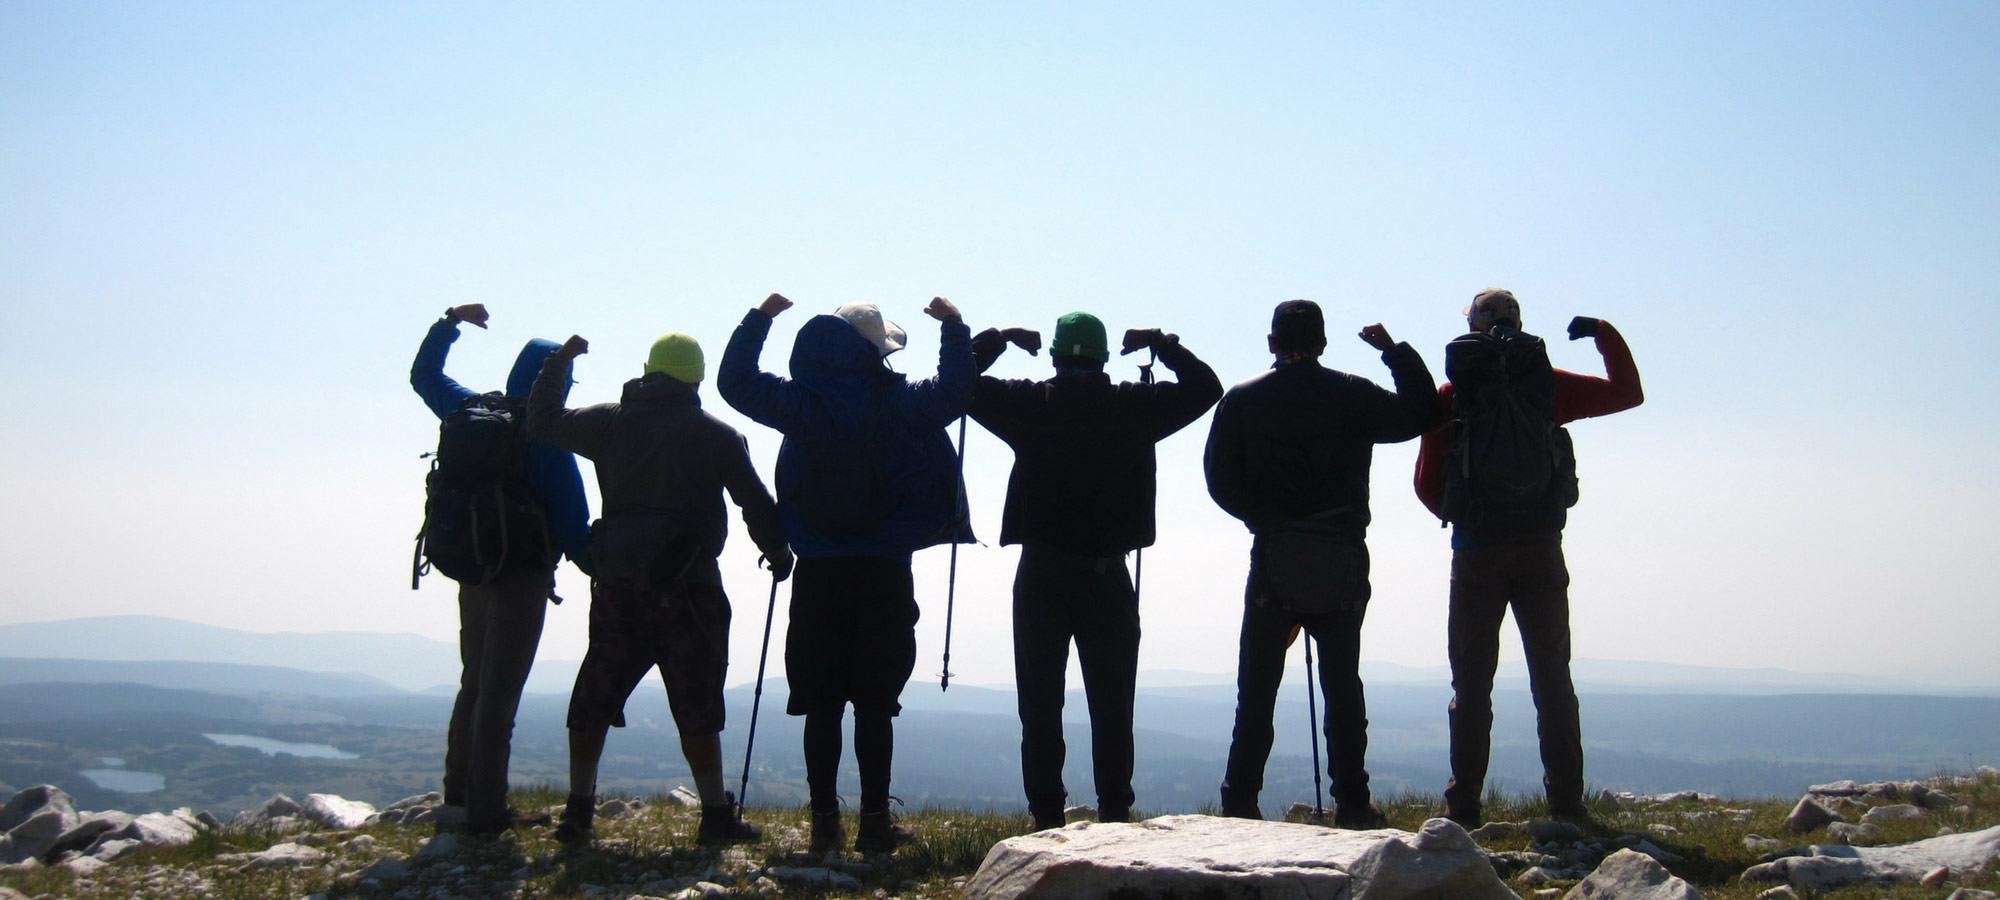 Group Sucessfully climbed mountain